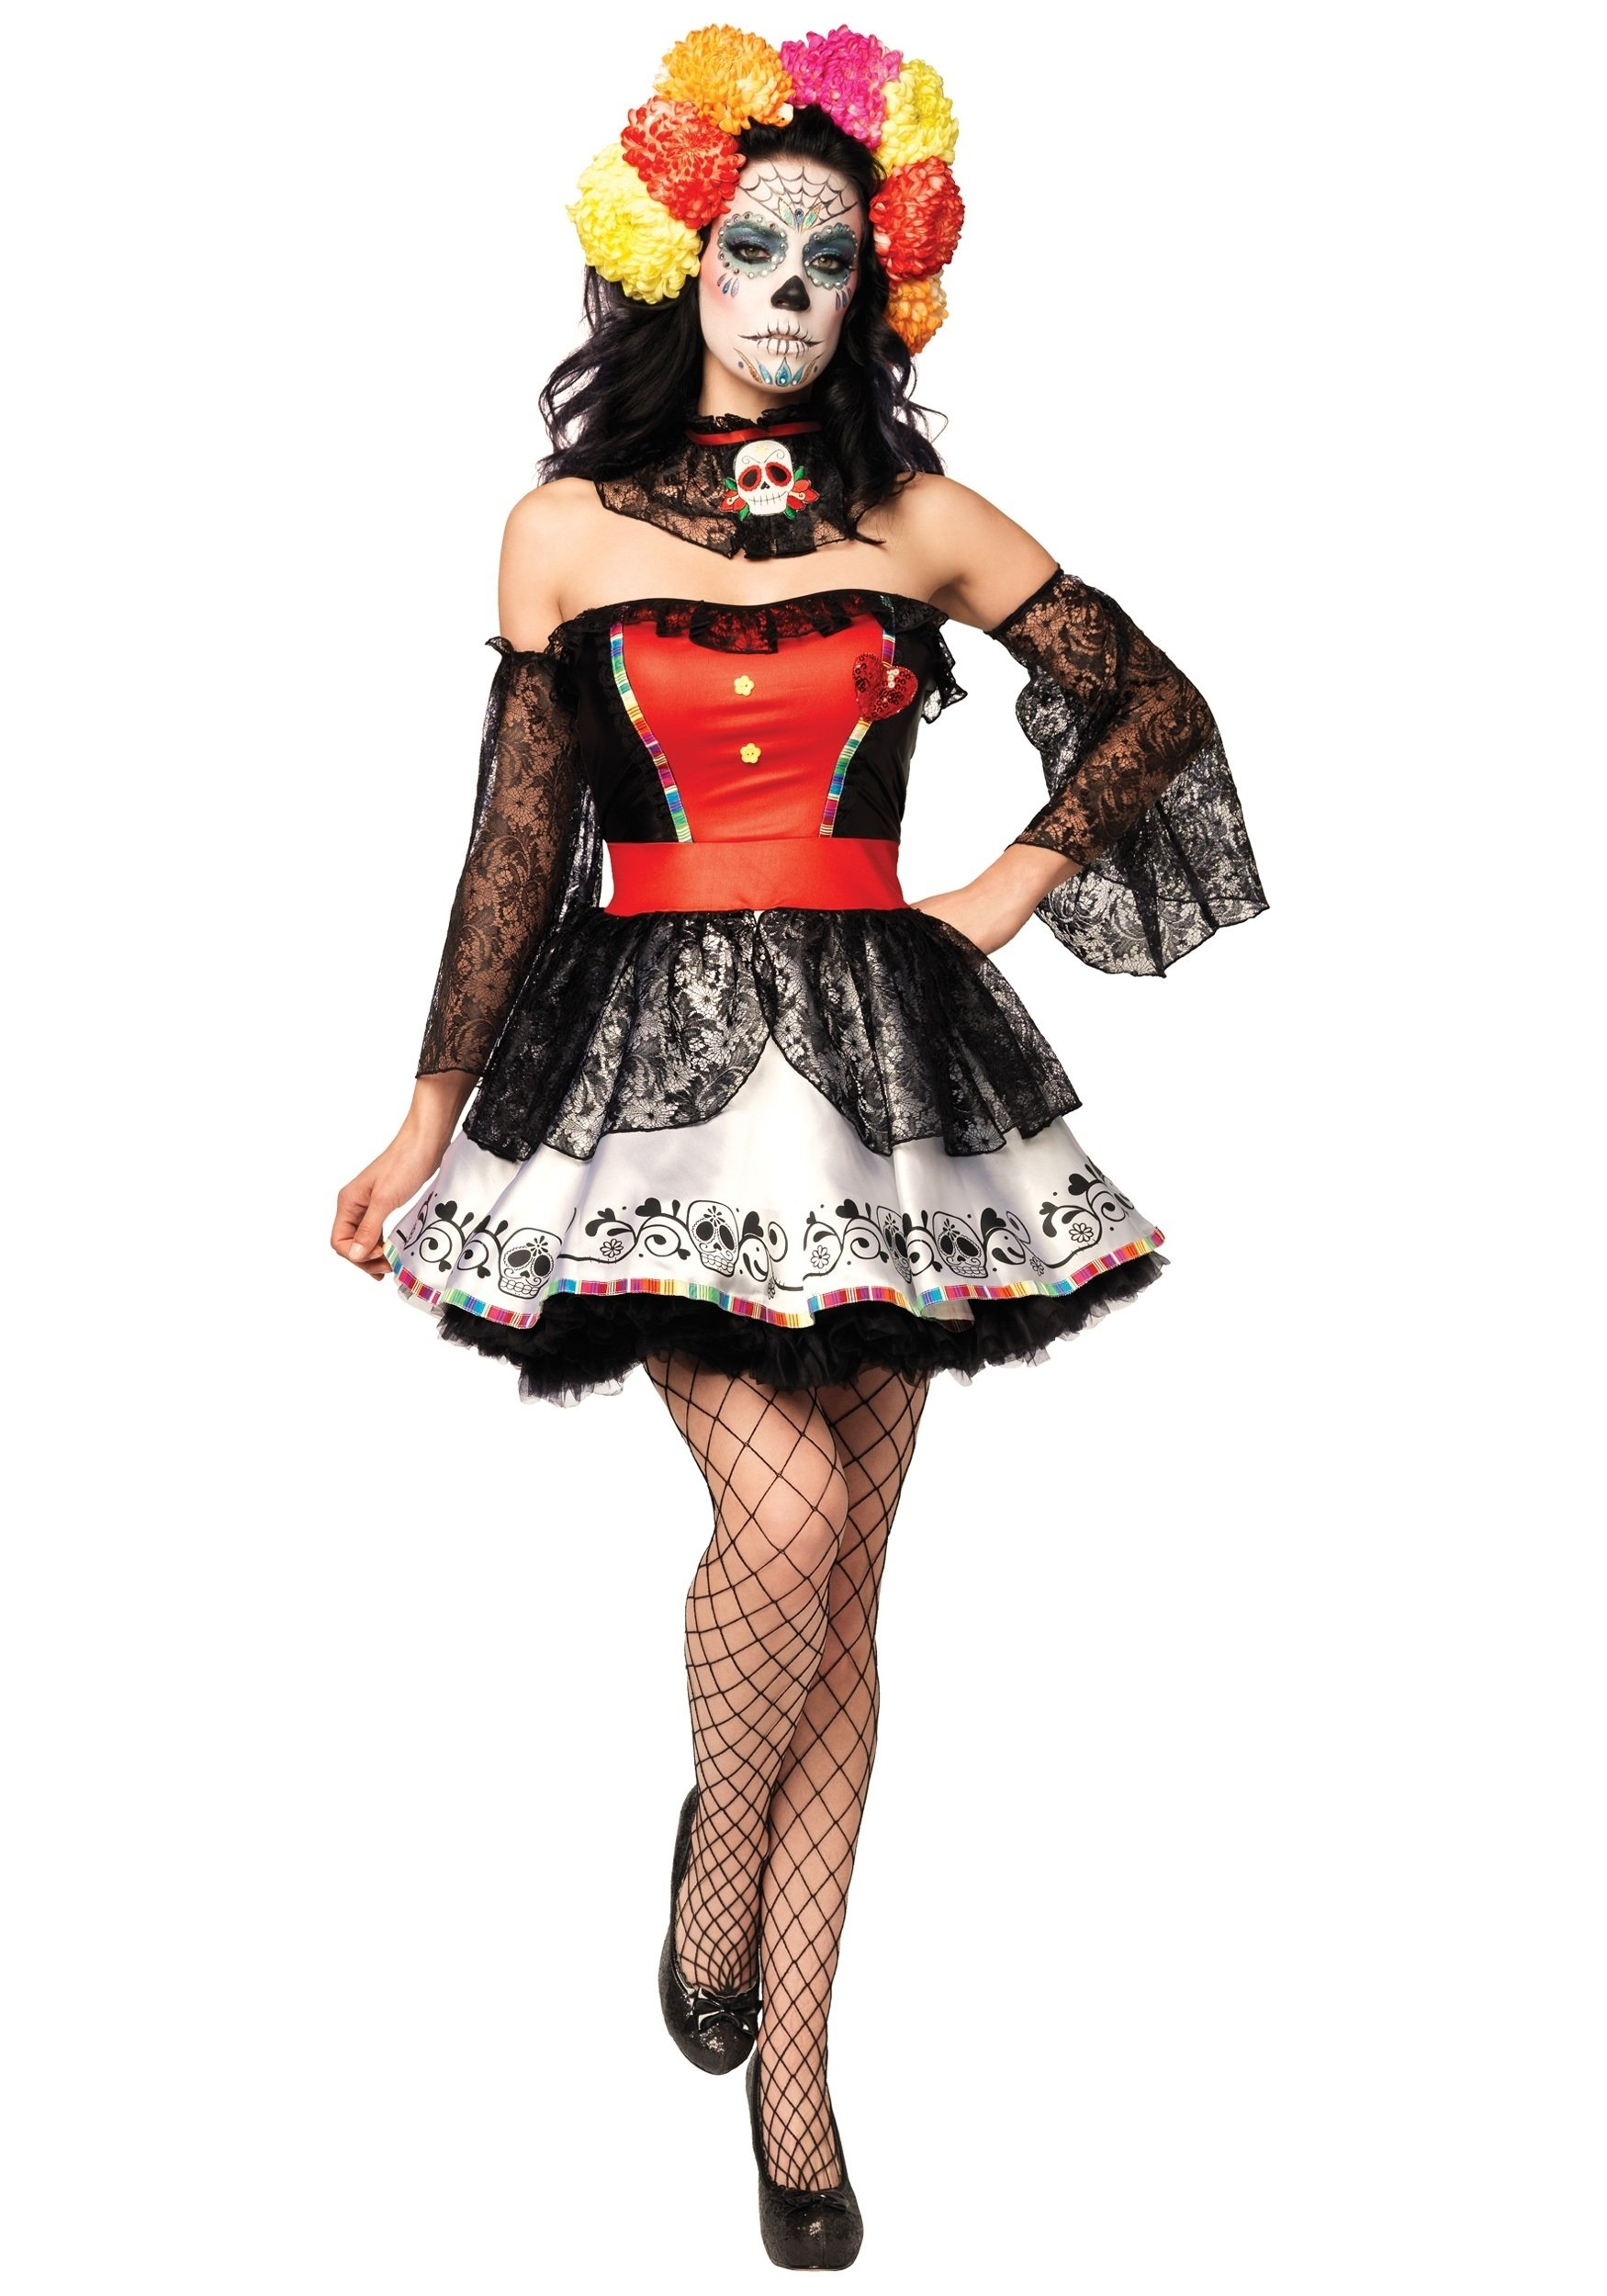 10 Great Day Of The Dead Halloween Costume Ideas muerta sugar skull costume halloween costume ideas 2016 2020